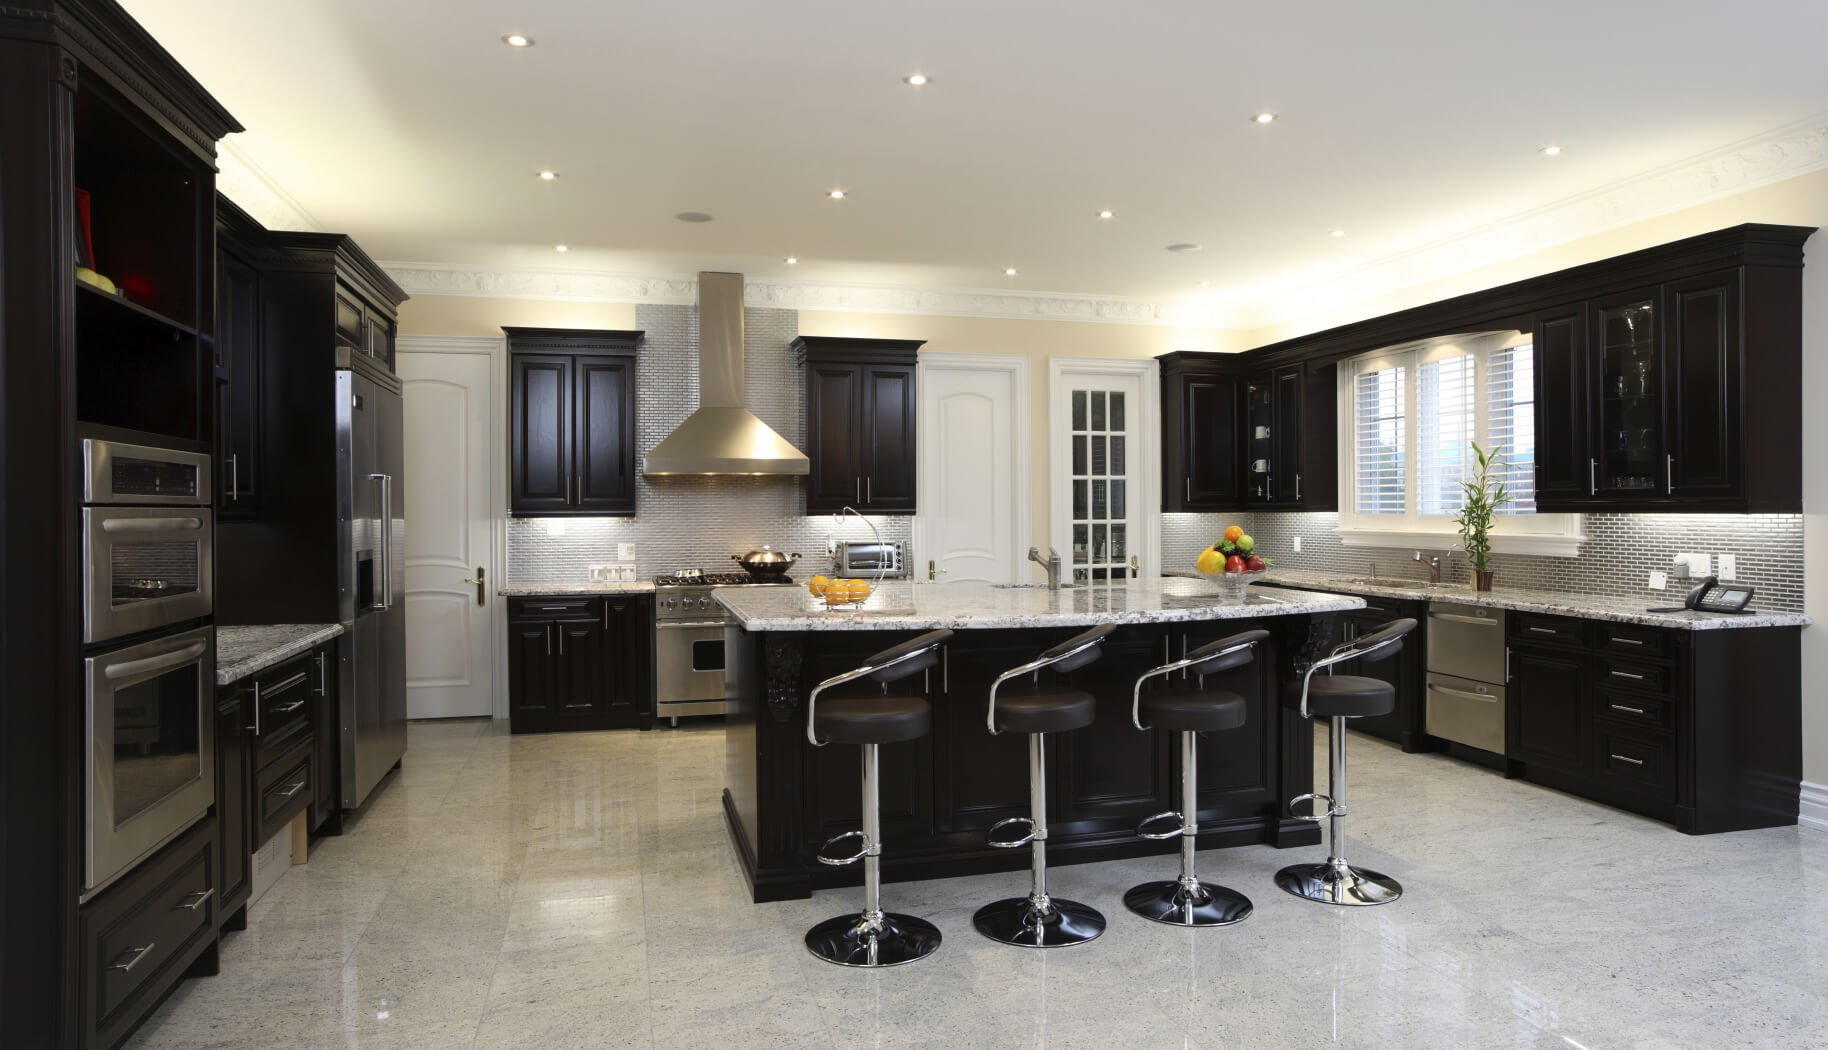 52 Dark Kitchens with Dark Wood OR Black Kitchen Cabinets (2019) Cabinets Kitchen Flooring Ideas on kitchen cabinets lighting, kitchen cabinets cabinets, kitchen cabinets paint, kitchen cabinets fixtures, kitchen cabinets windows, kitchen cabinets appliances, kitchen cabinets carpet, kitchen cabinets doors, kitchen cabinets dishwasher, kitchen cabinets sinks, kitchen cabinets garage,